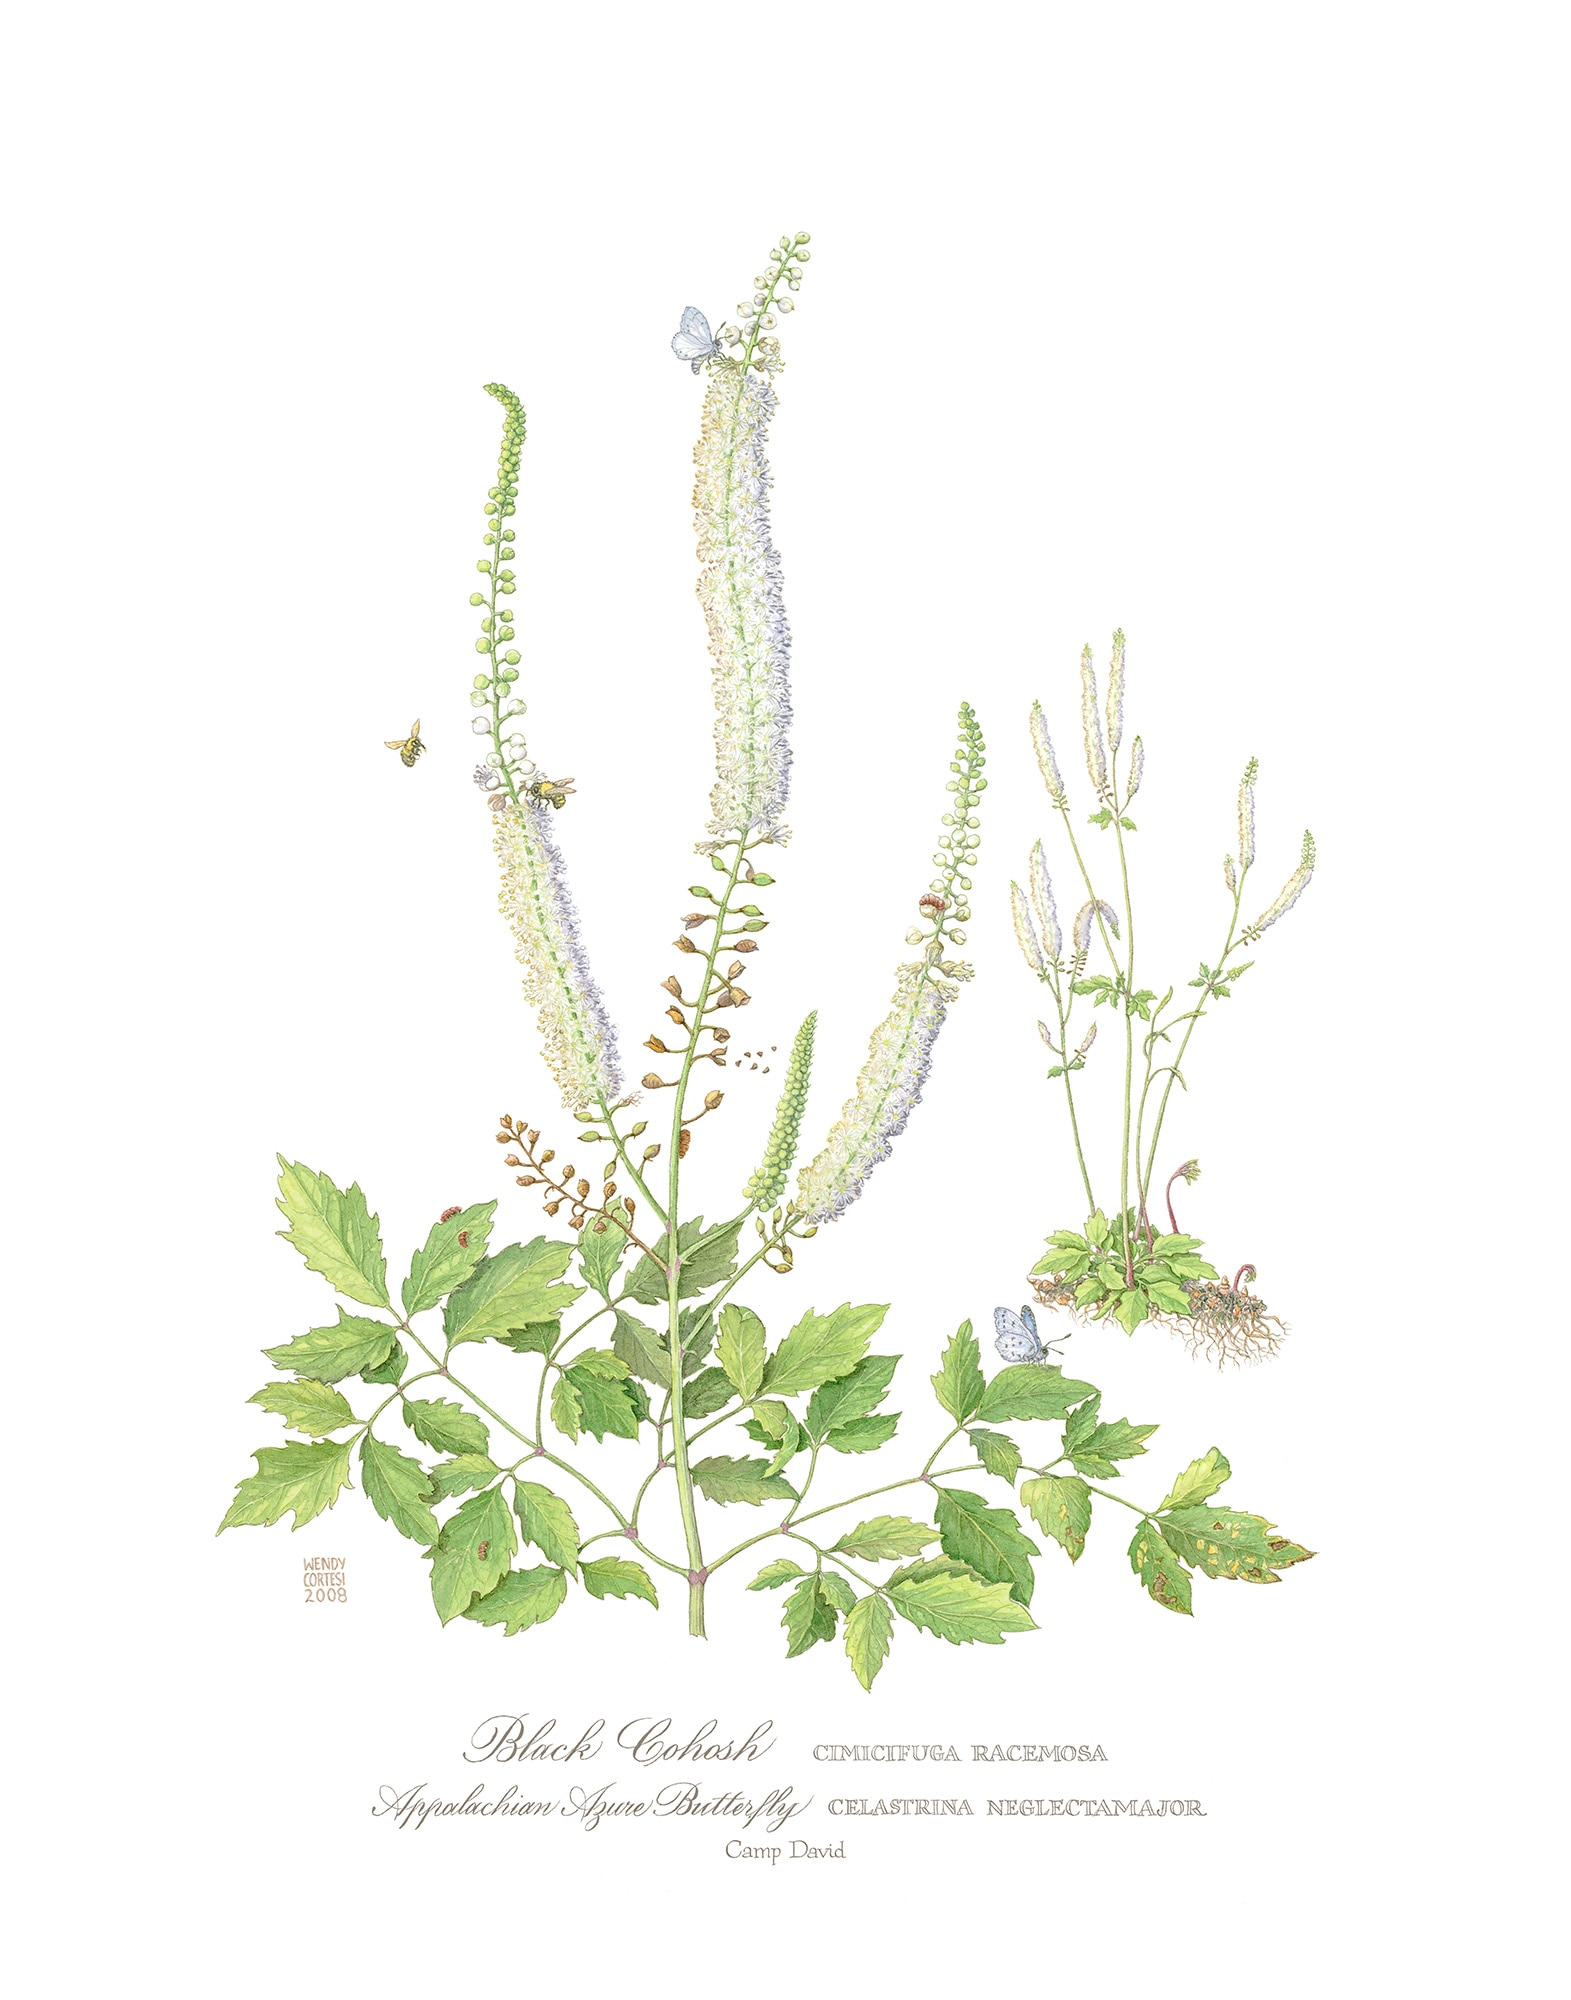 Wendy Cortesi's Black Cohosh